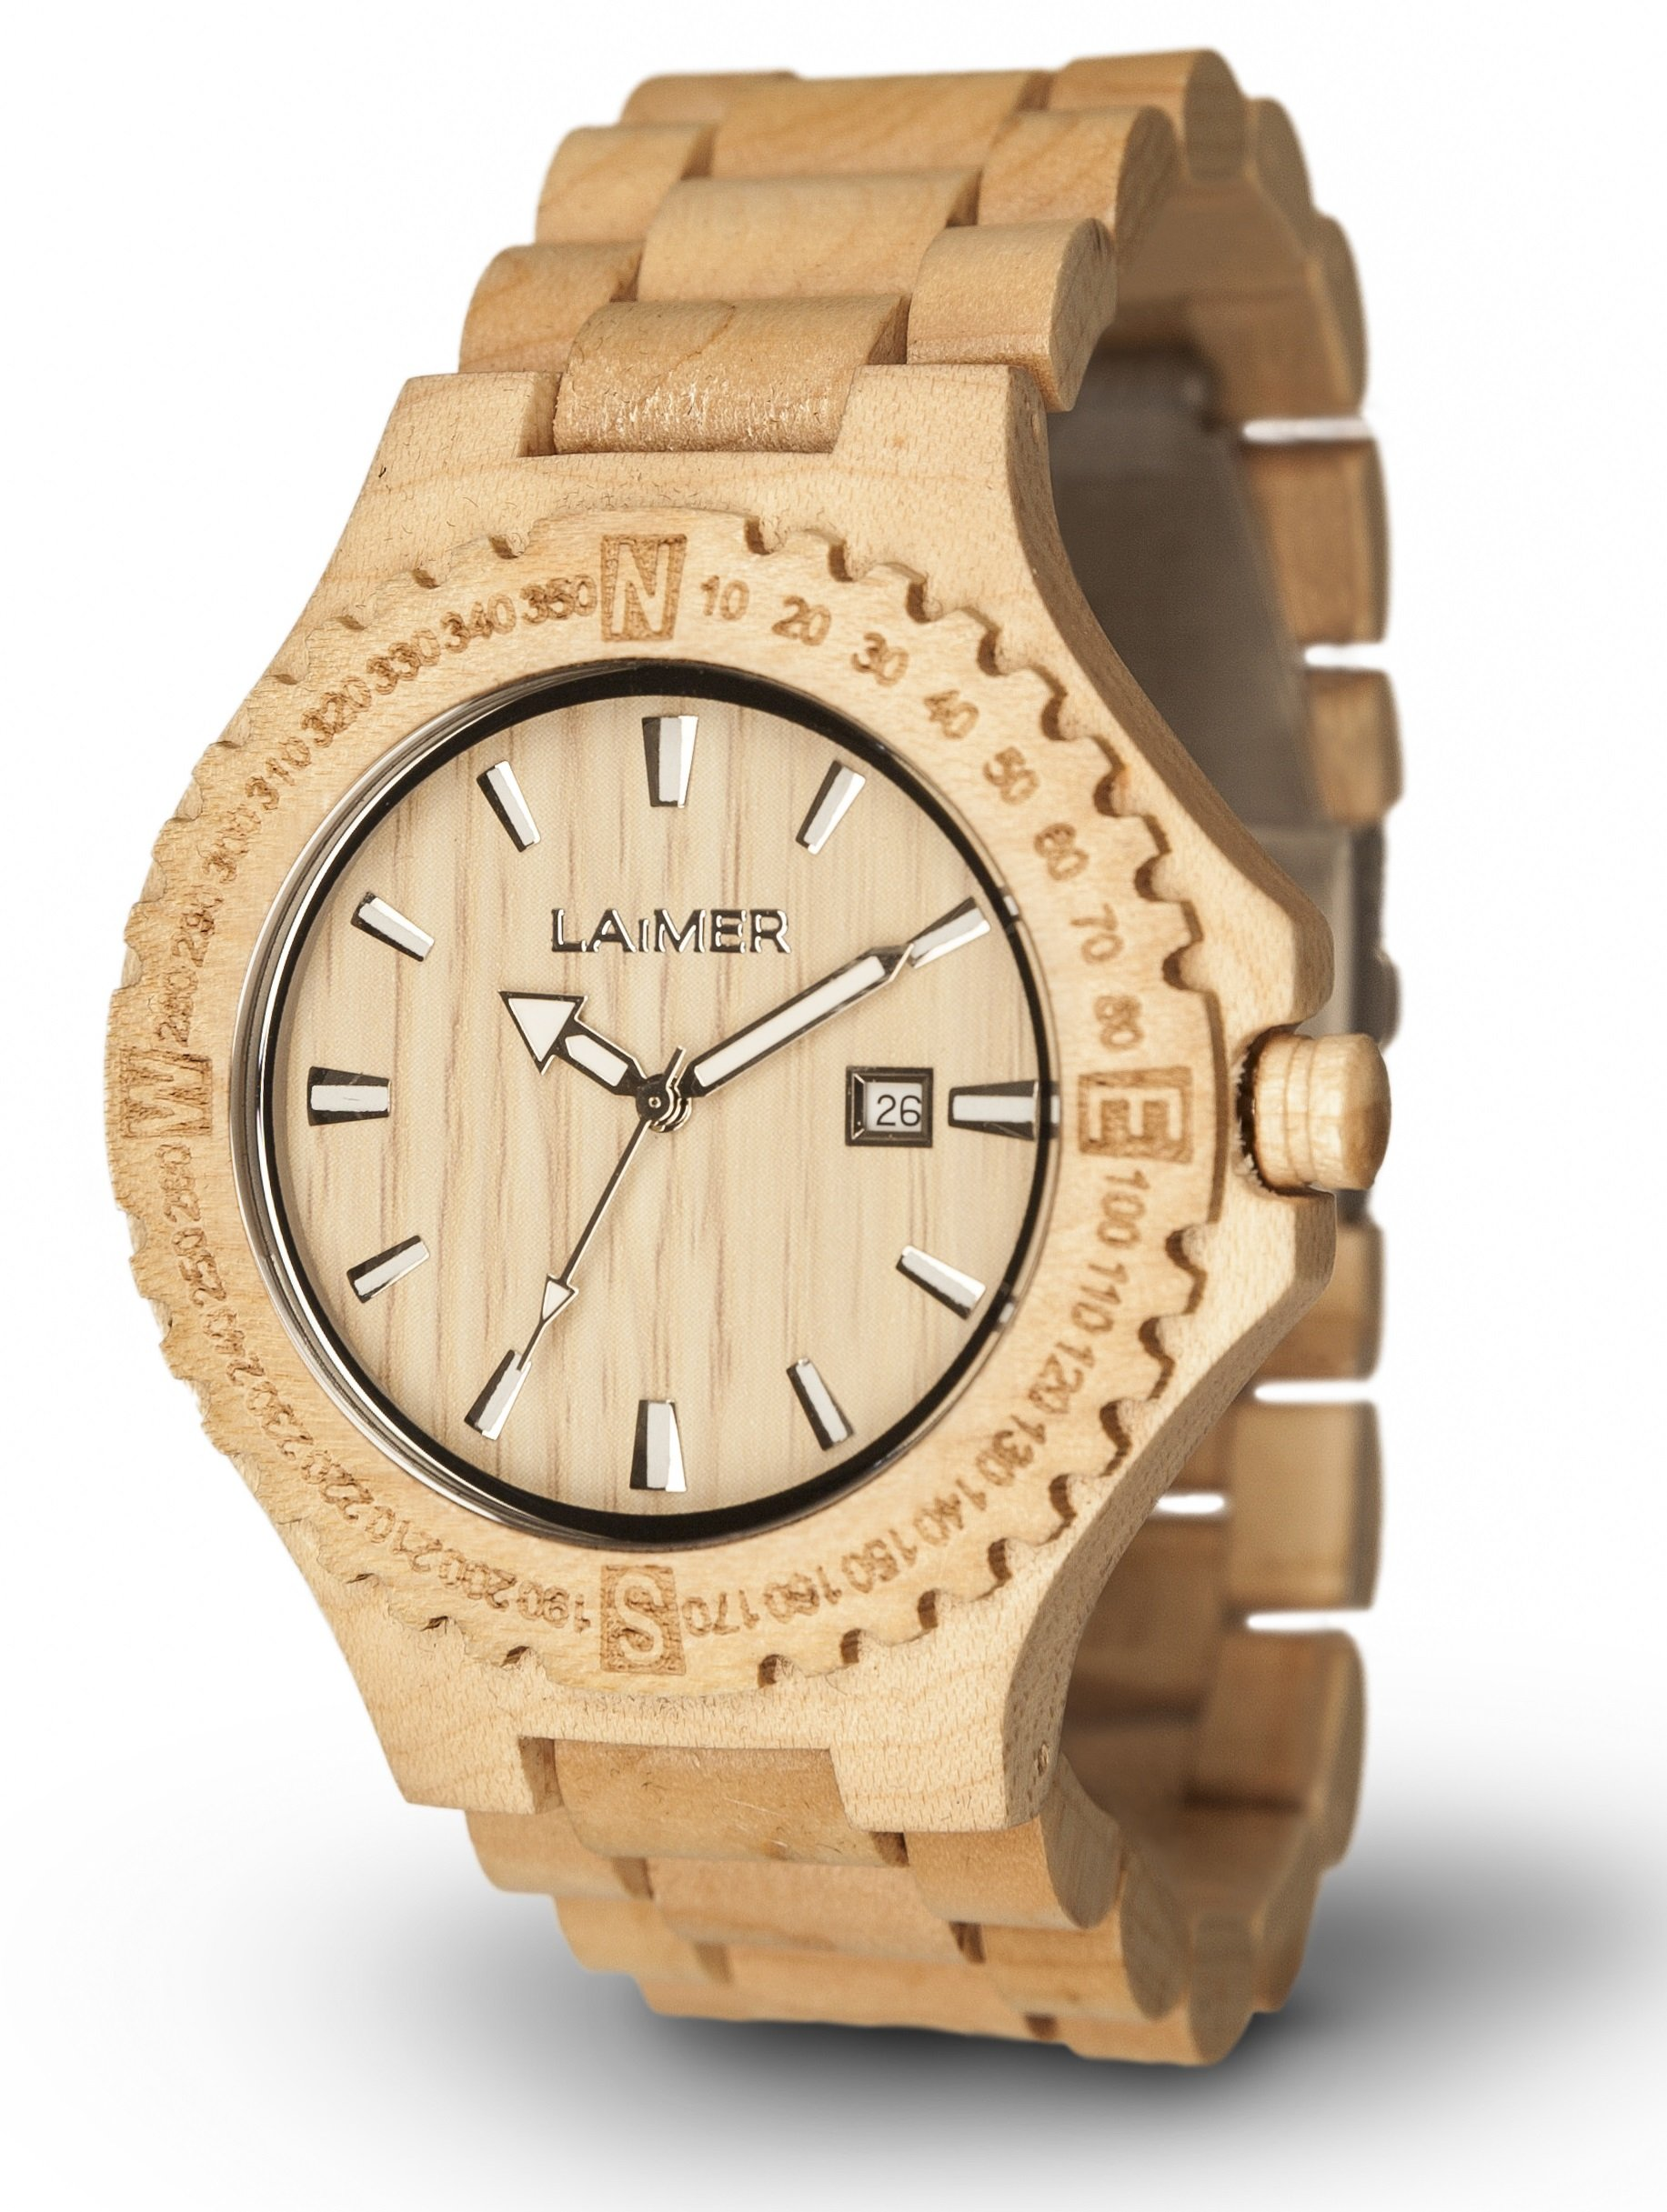 LAiMER Men's Wooden Watch JAKOB - Wrist Watch made of natural Maple Wood - timeless & bright Design